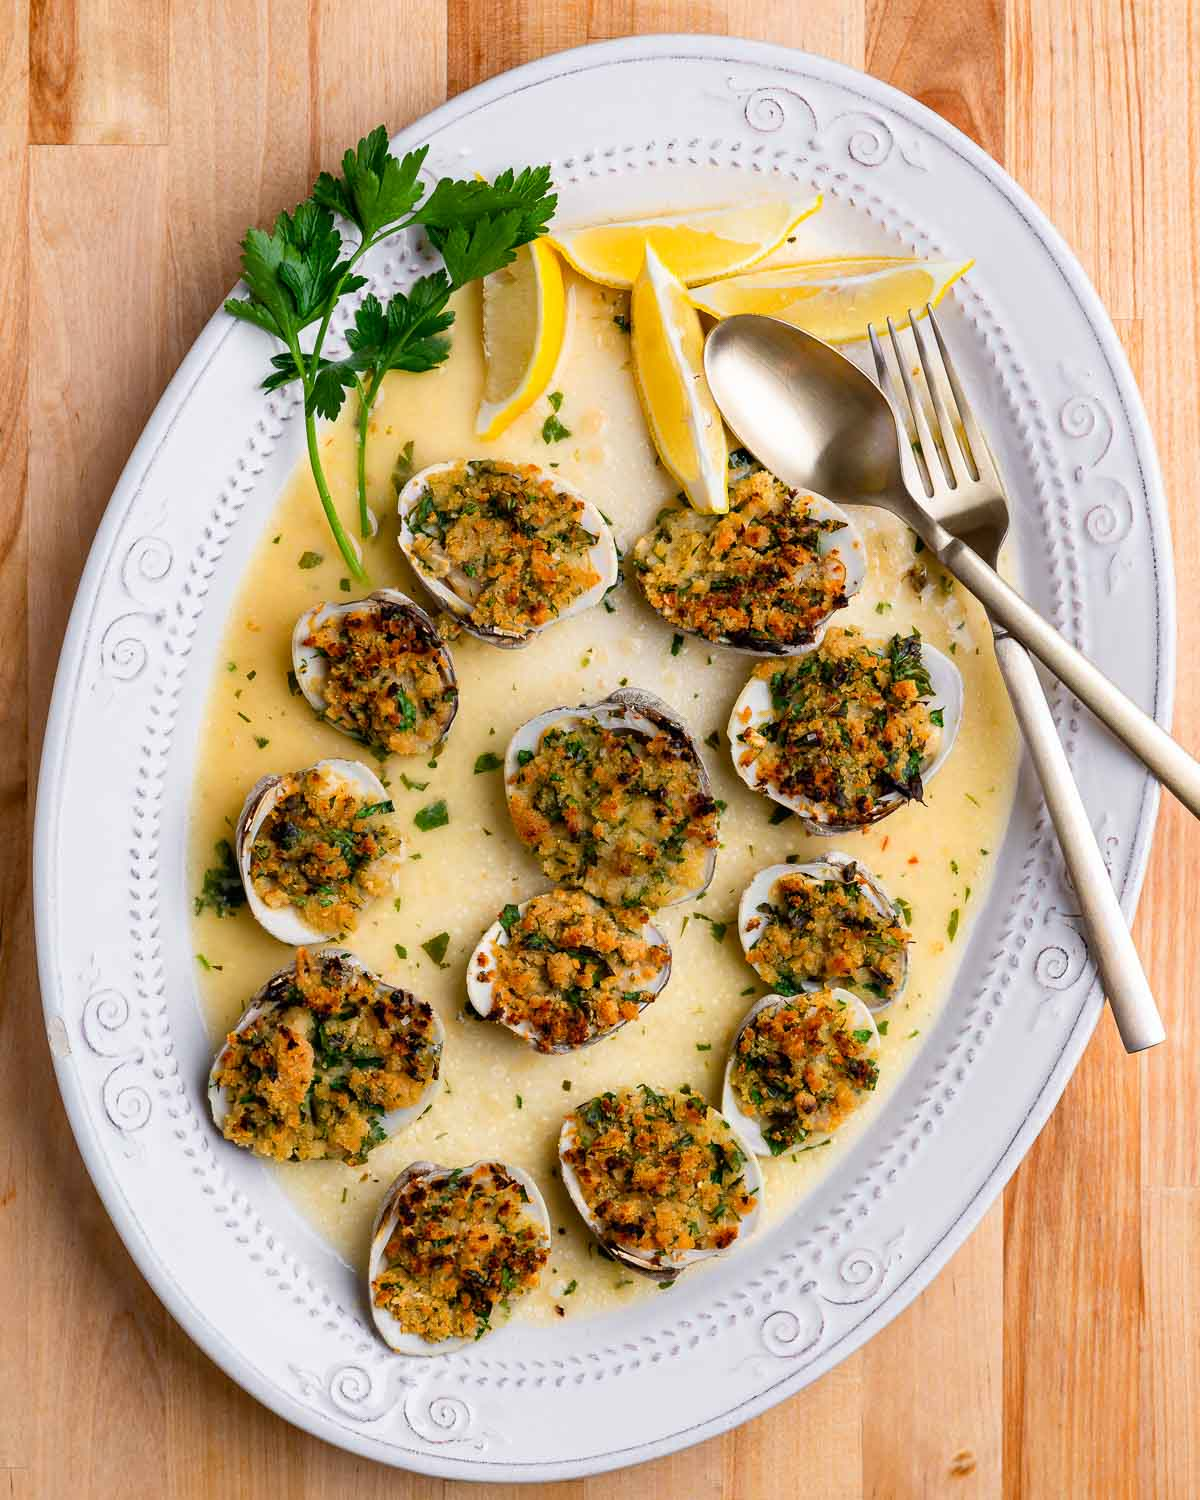 Overhead shot of cooked clams oreganata in oval plate.